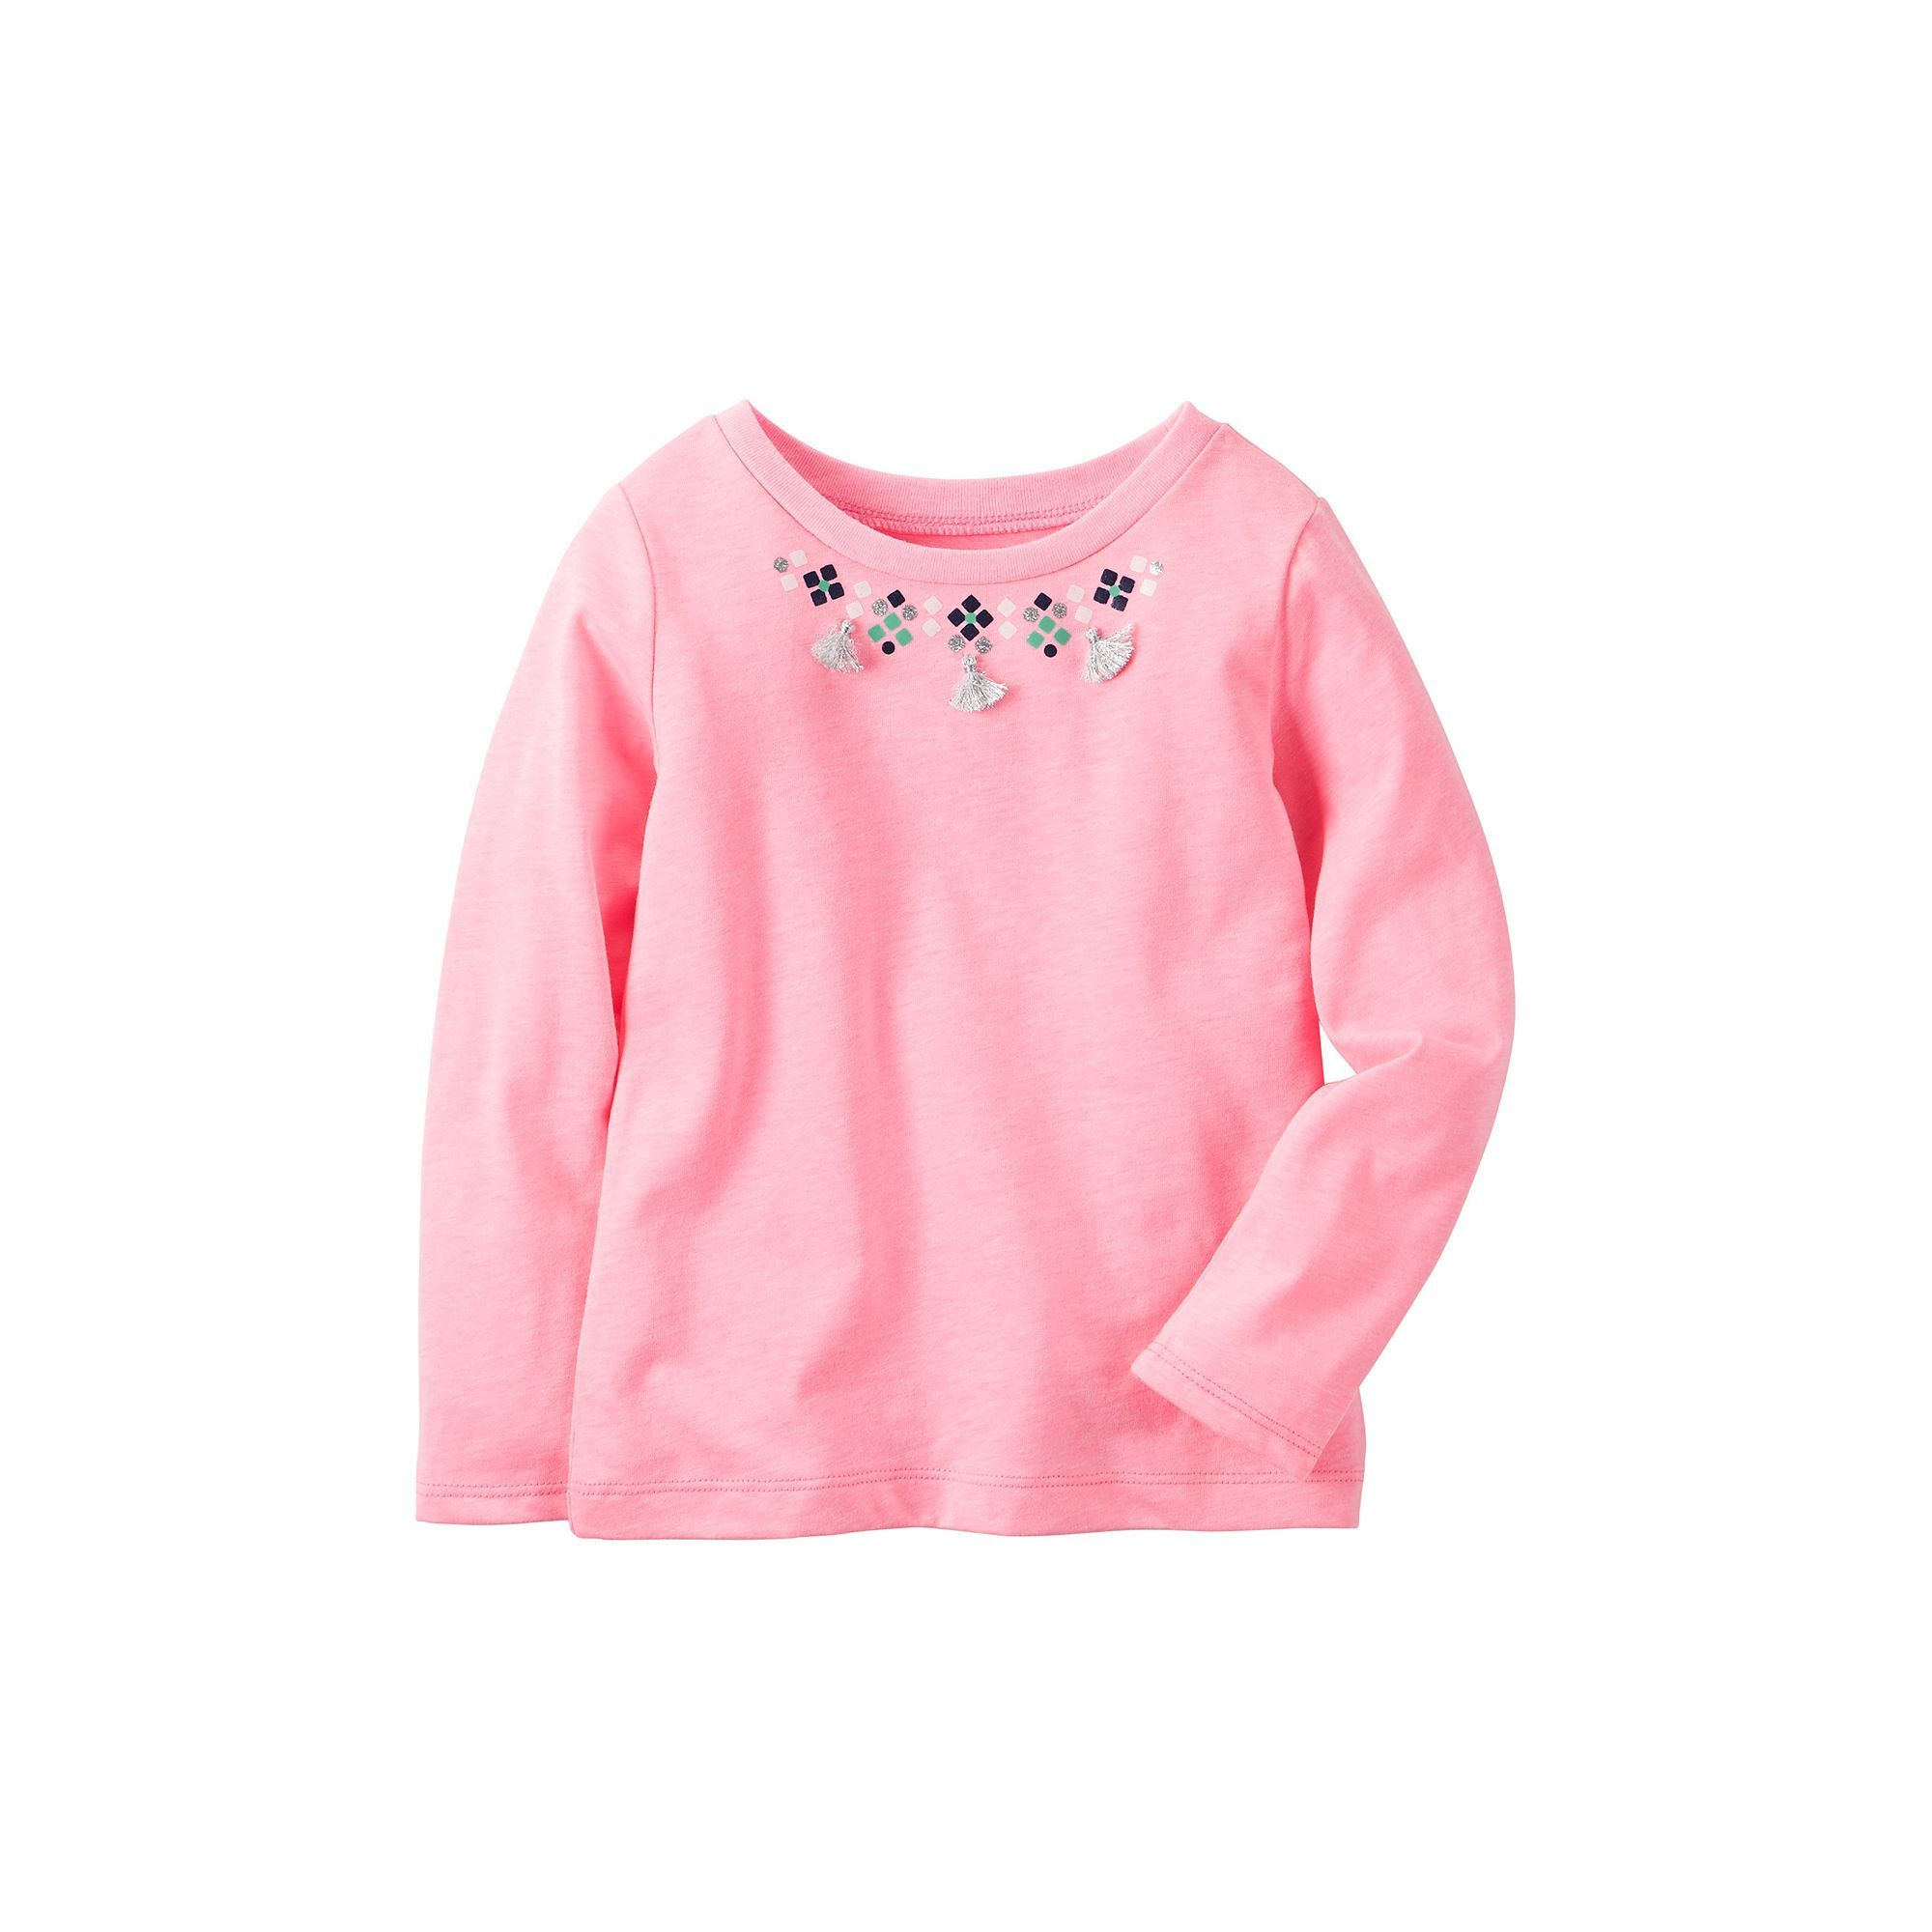 Baby Girl Carter's Tassel Necklace Pink Top, Size: 12 Months